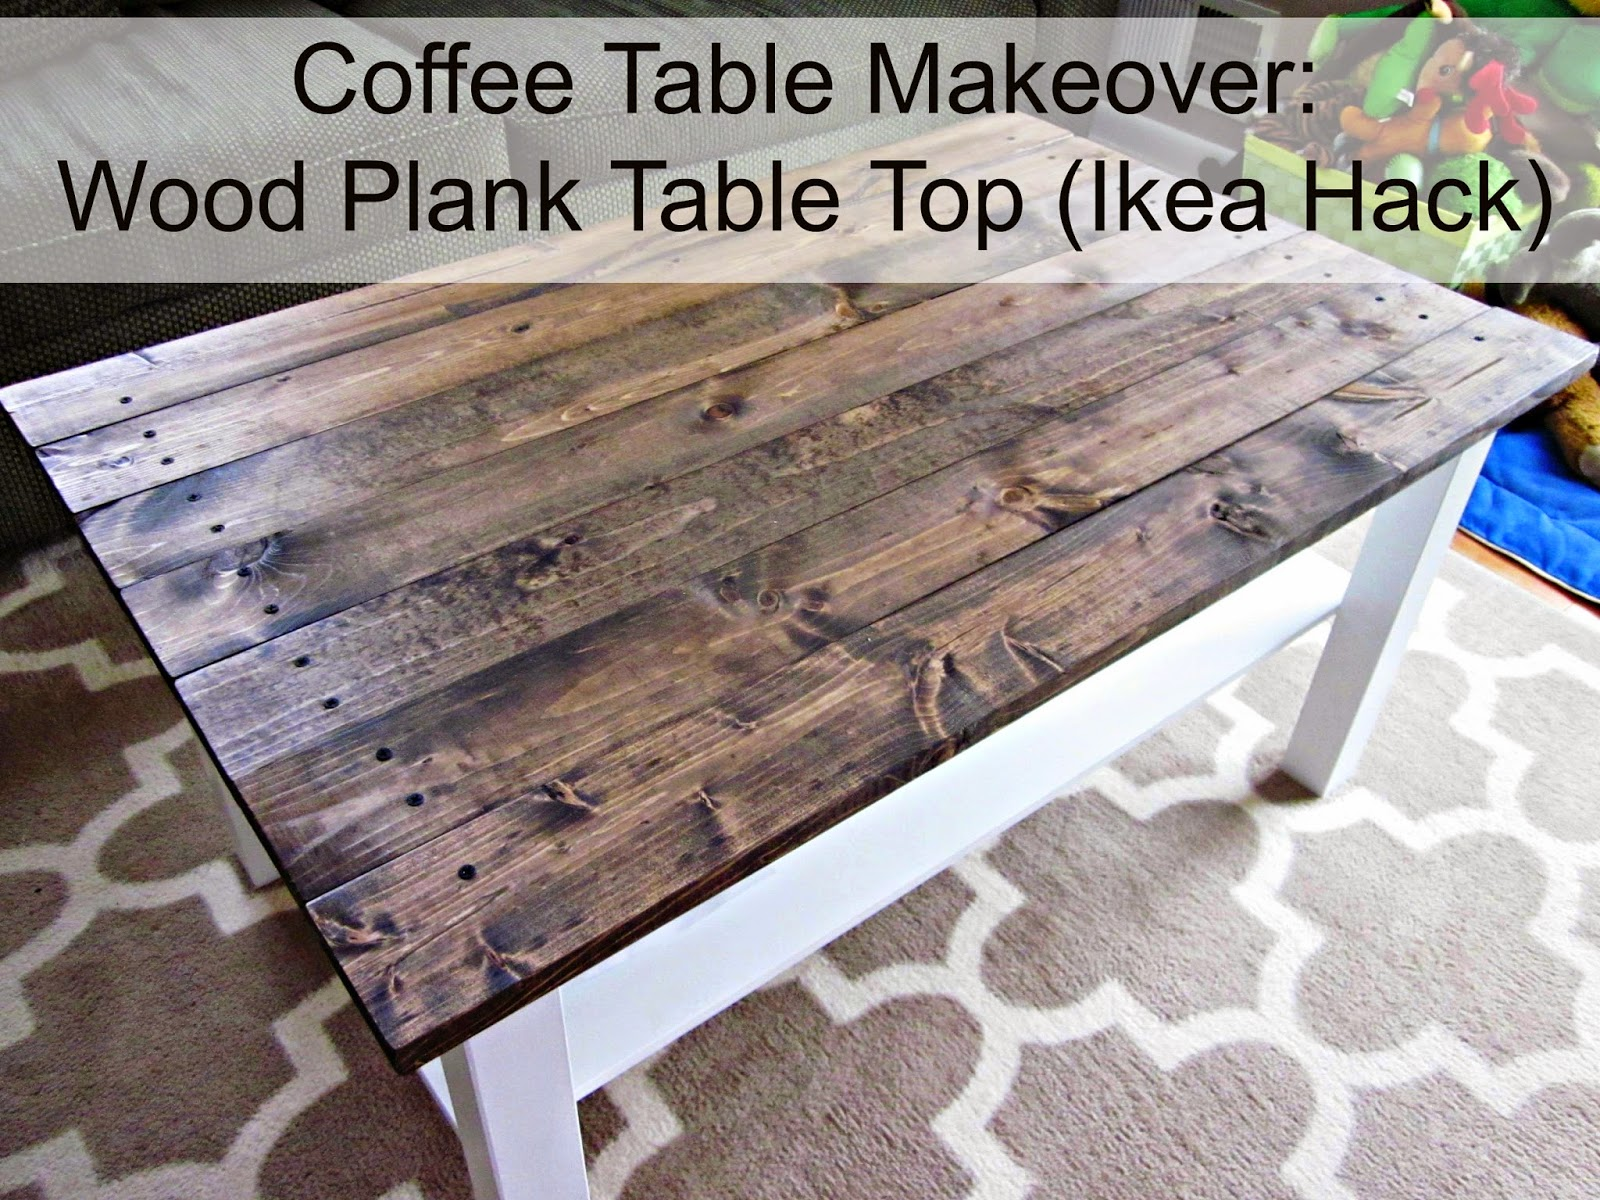 Coffee Table Makeover - Featured at HMLP 23Jan2015